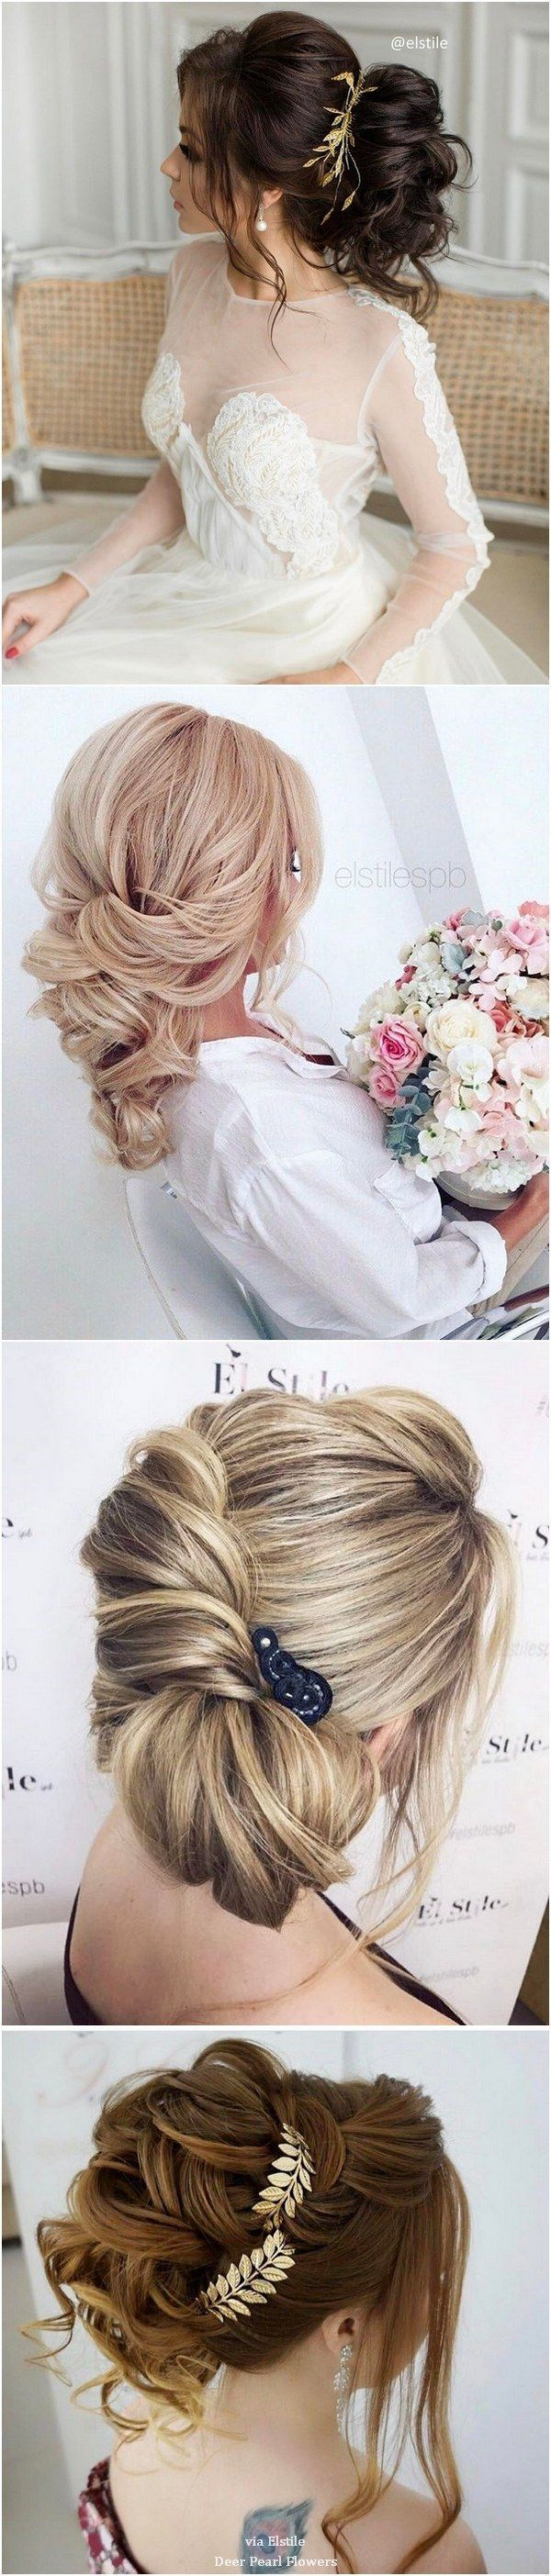 Elstile Long Wedding Hairstyle Inspiration / http://www.deerpearlflowers.com/elstile-long-wedding-hairstyle-inspiration/